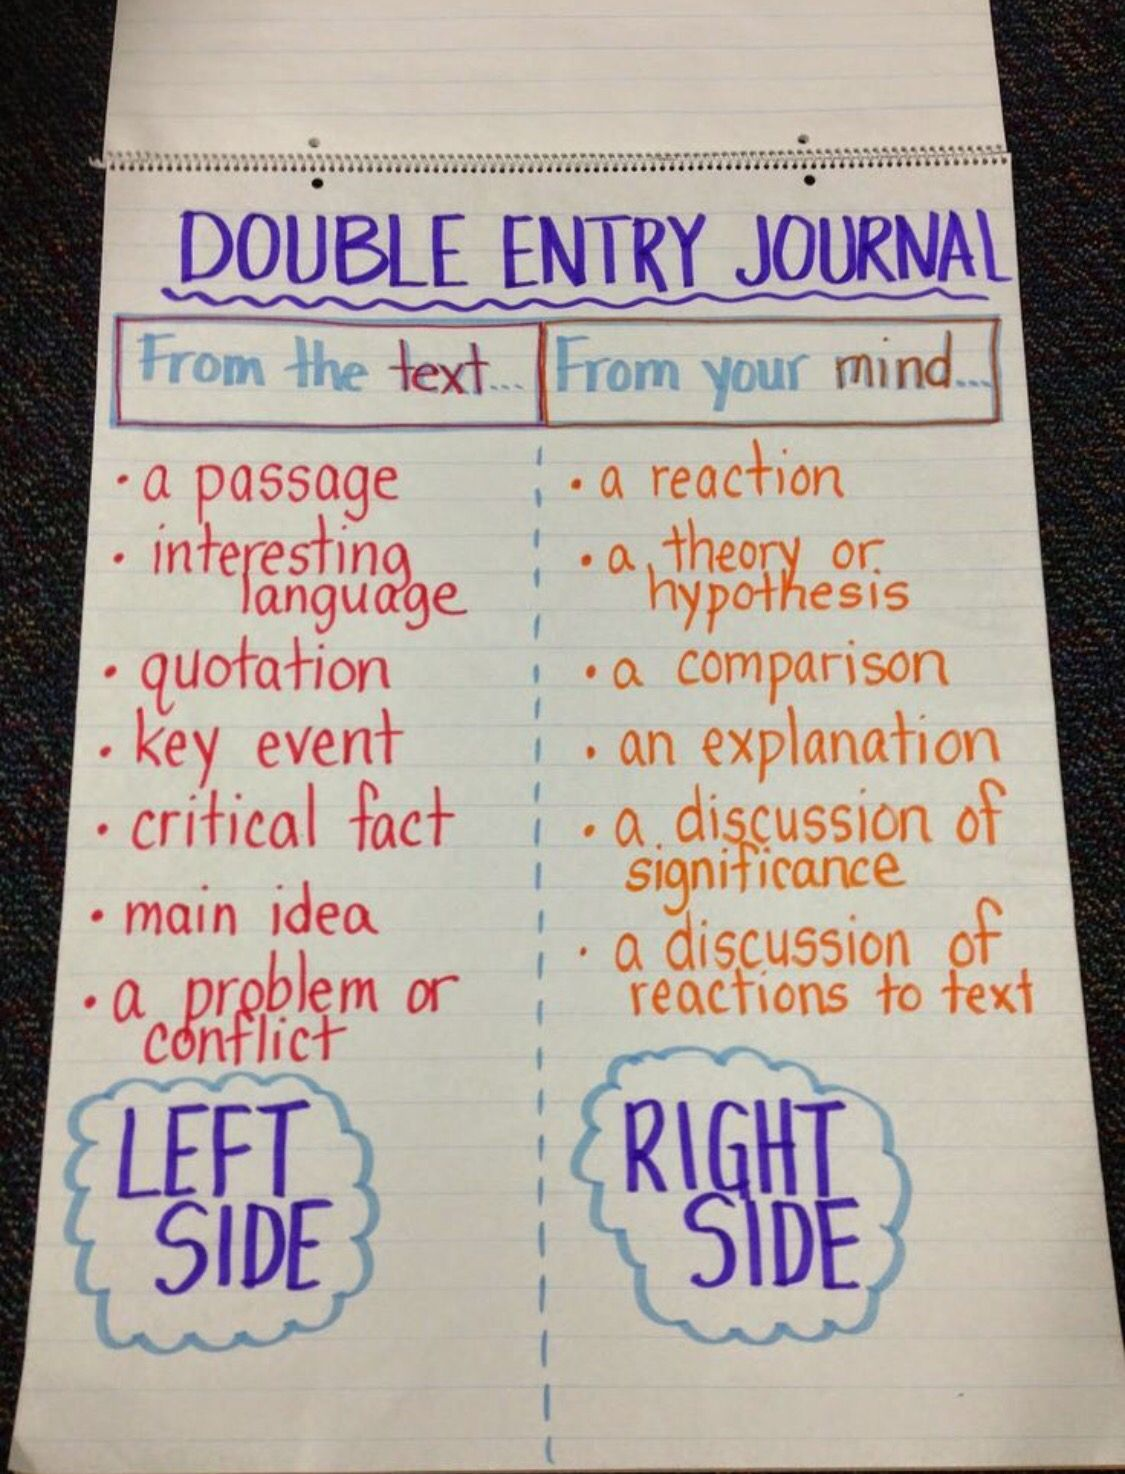 The Double Entry Journal Strategy Enables Students To